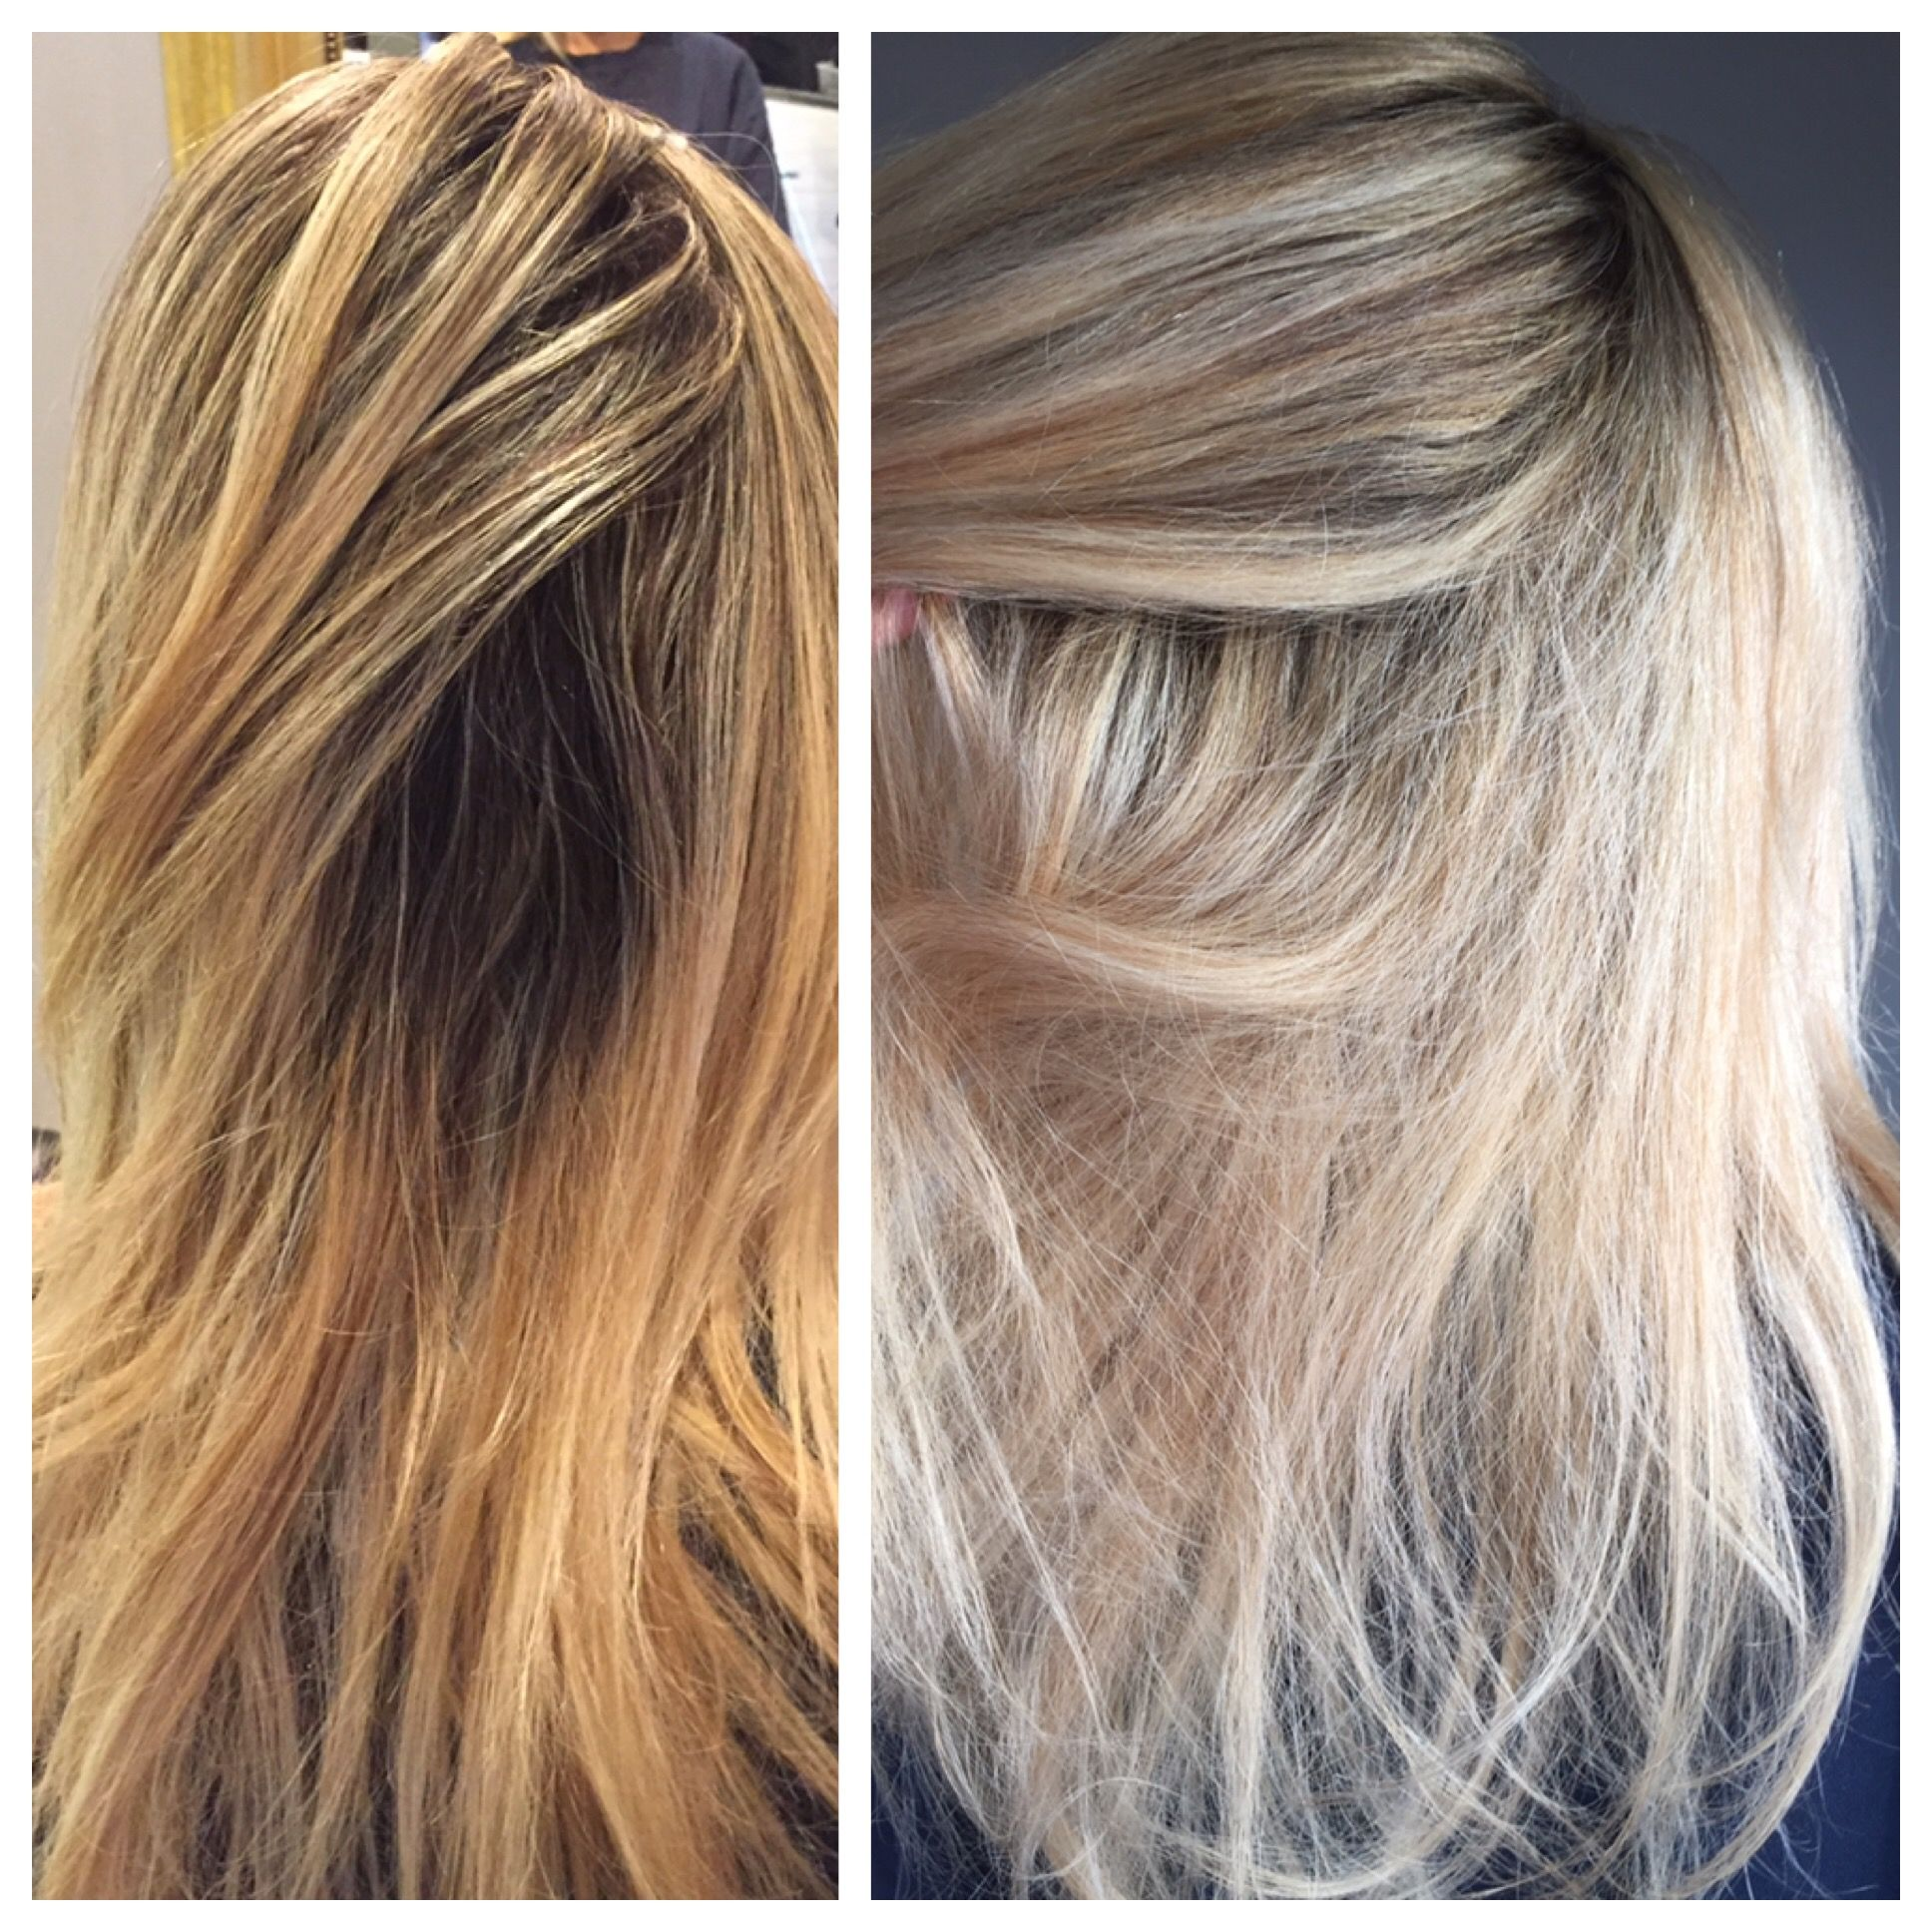 Before And After Blonde Hair Brighter Hilights Cooler Hilights